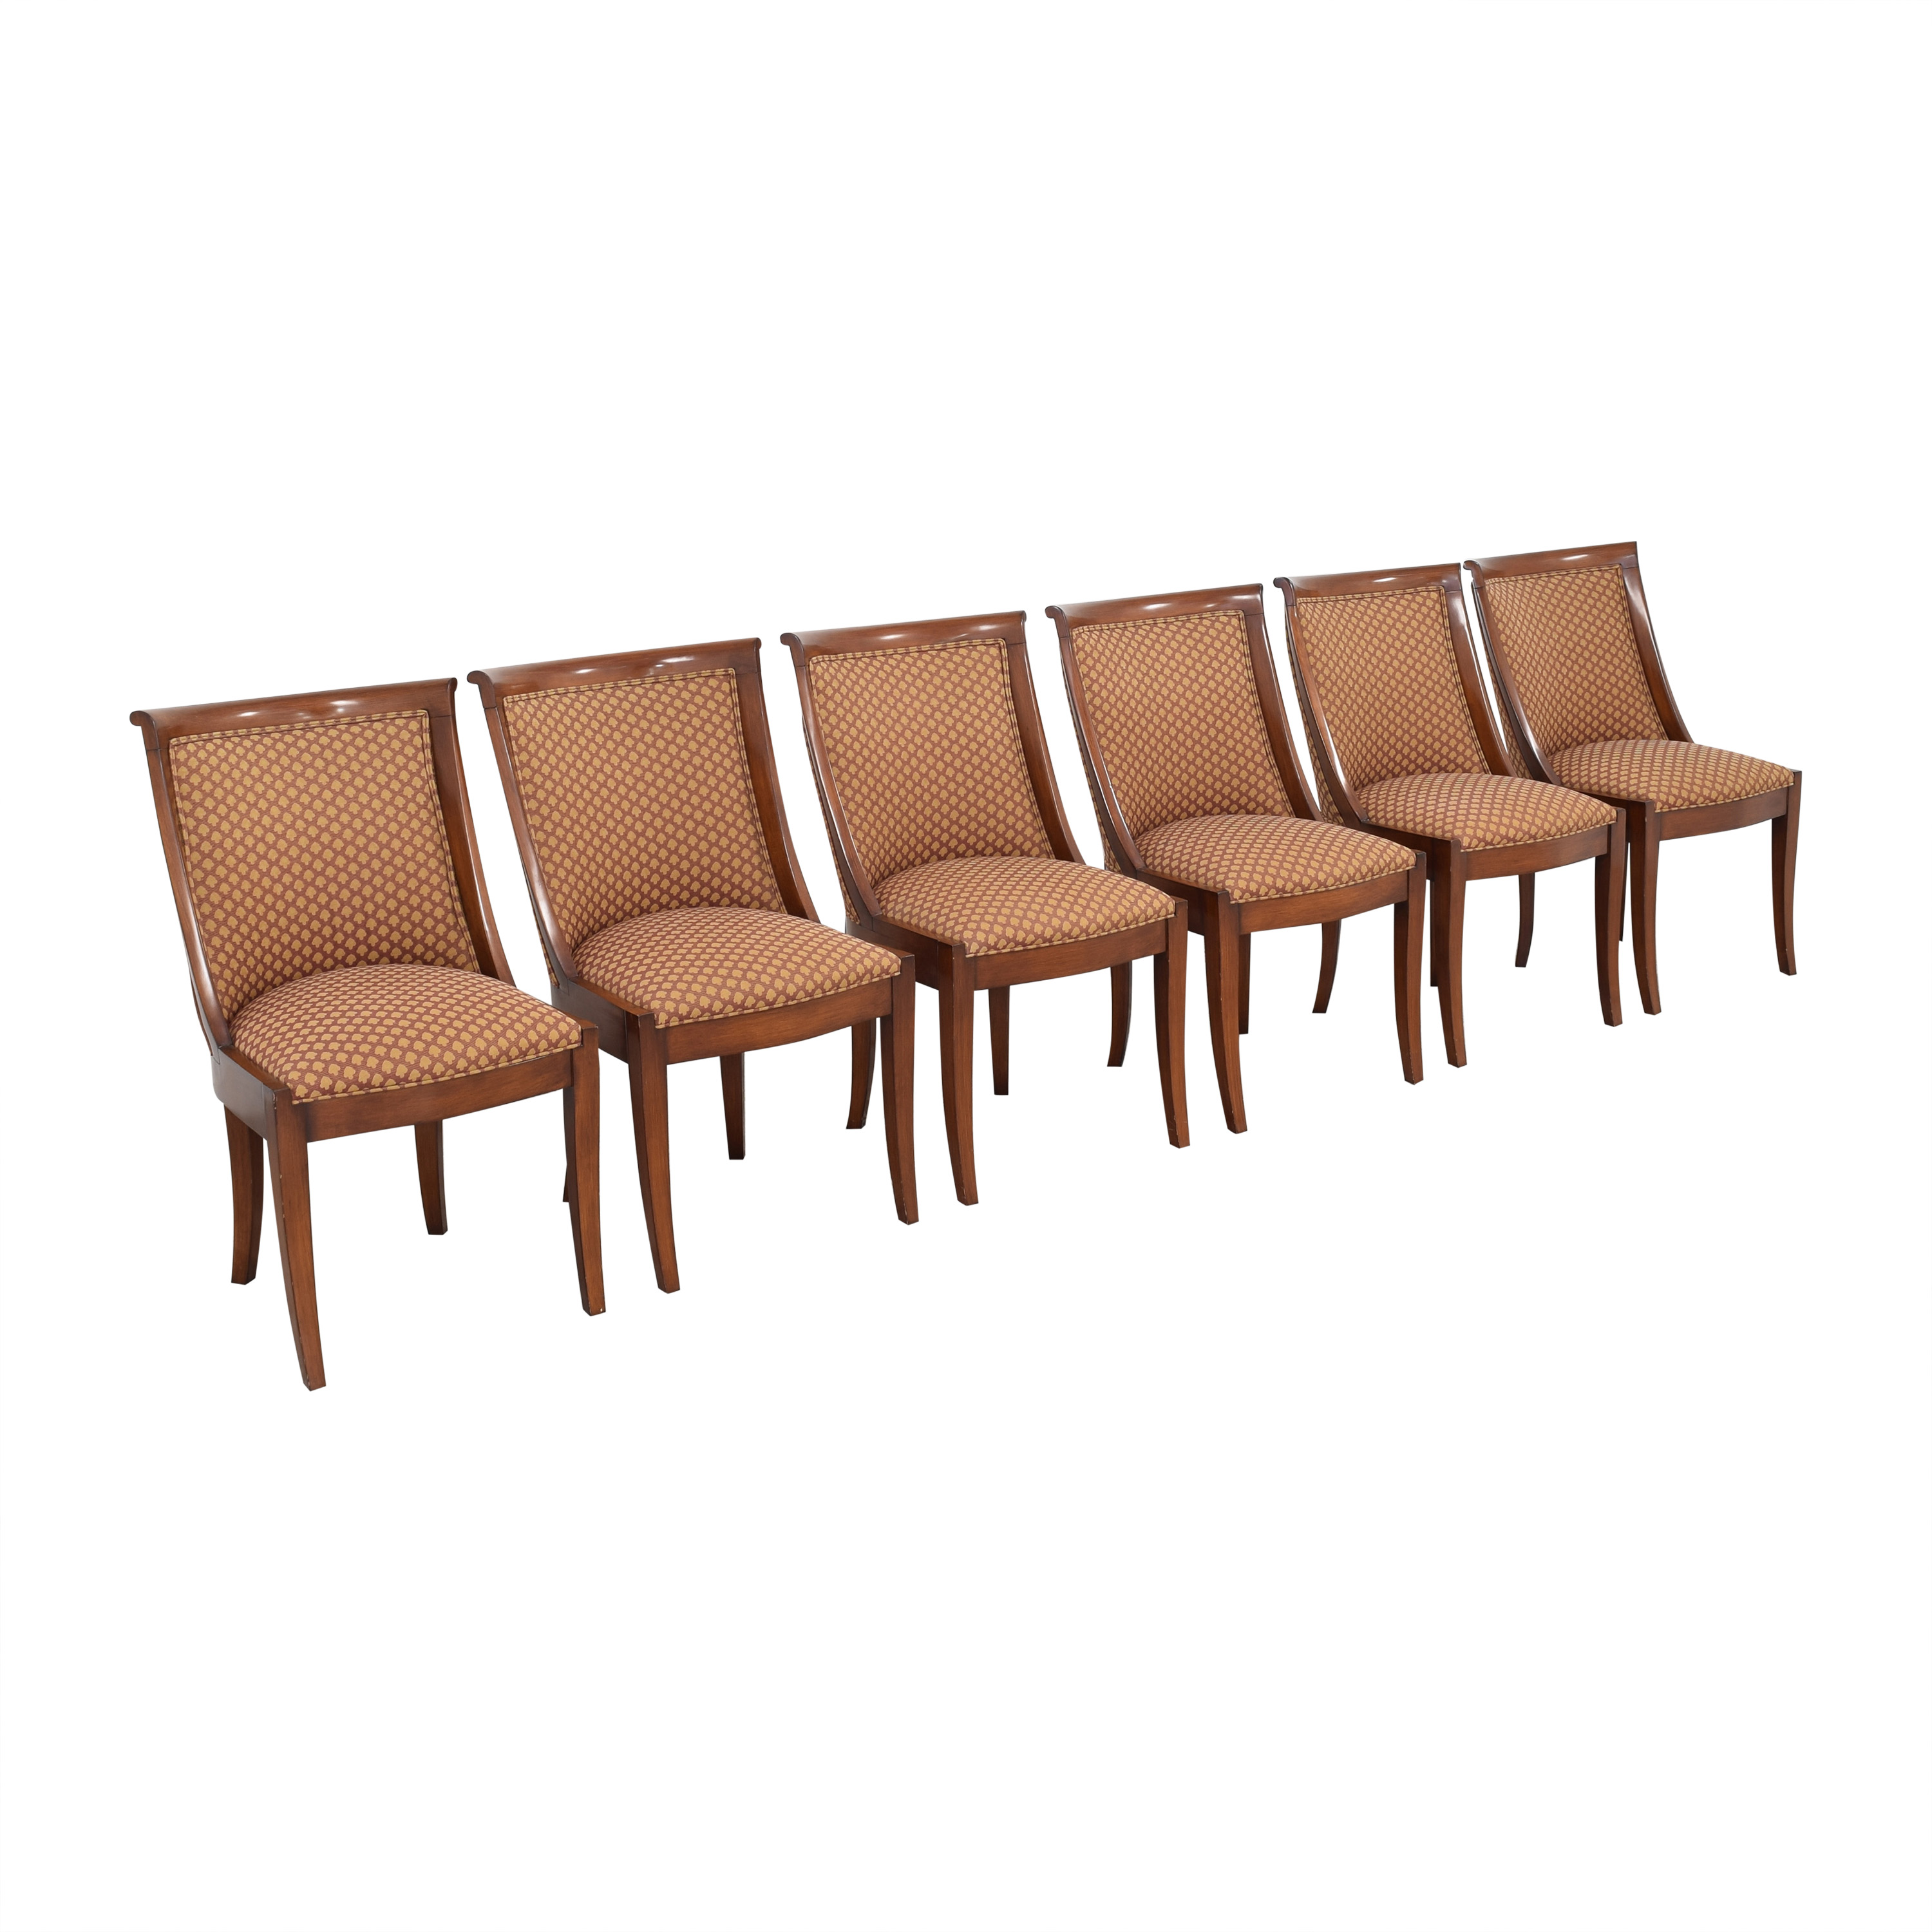 shop Artistic Frame Dining Side Chairs Artistic Frame Dining Chairs